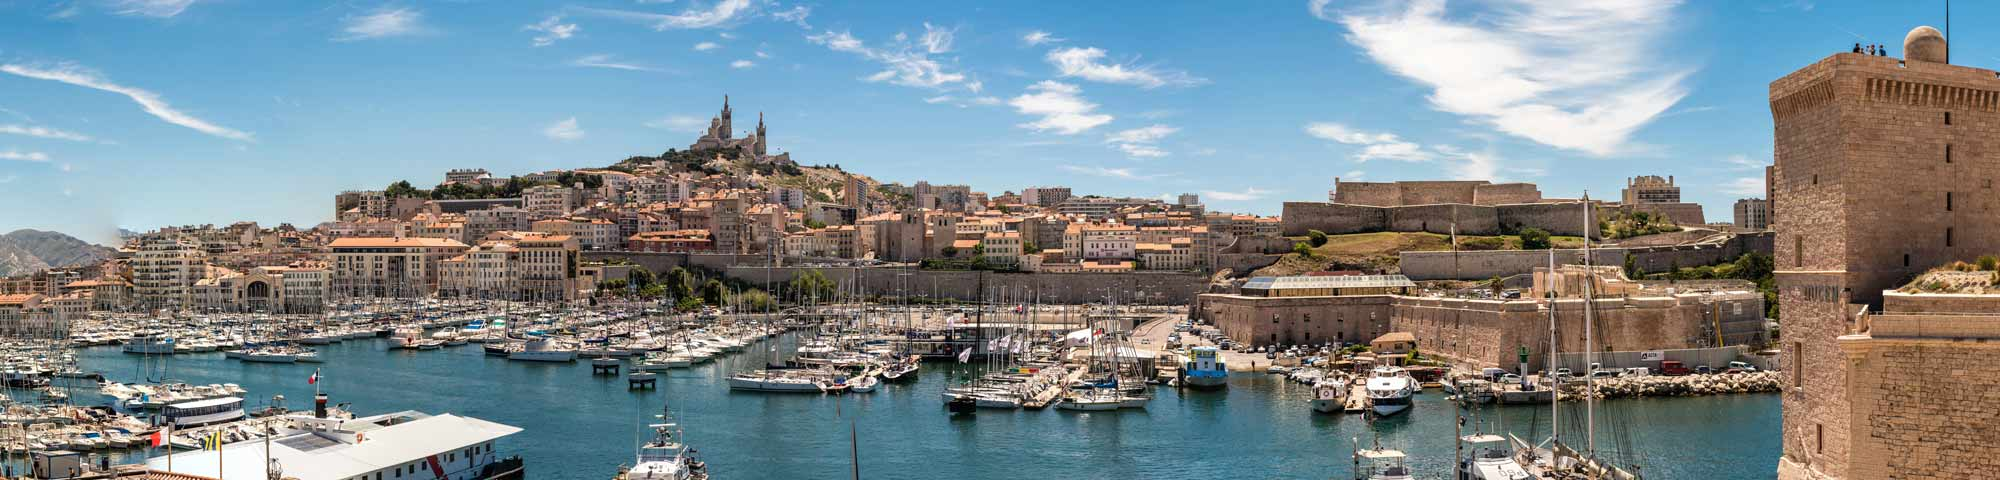 Accueil j kalpac sofilim expertise comptable - Cabinet expertise comptable marseille ...